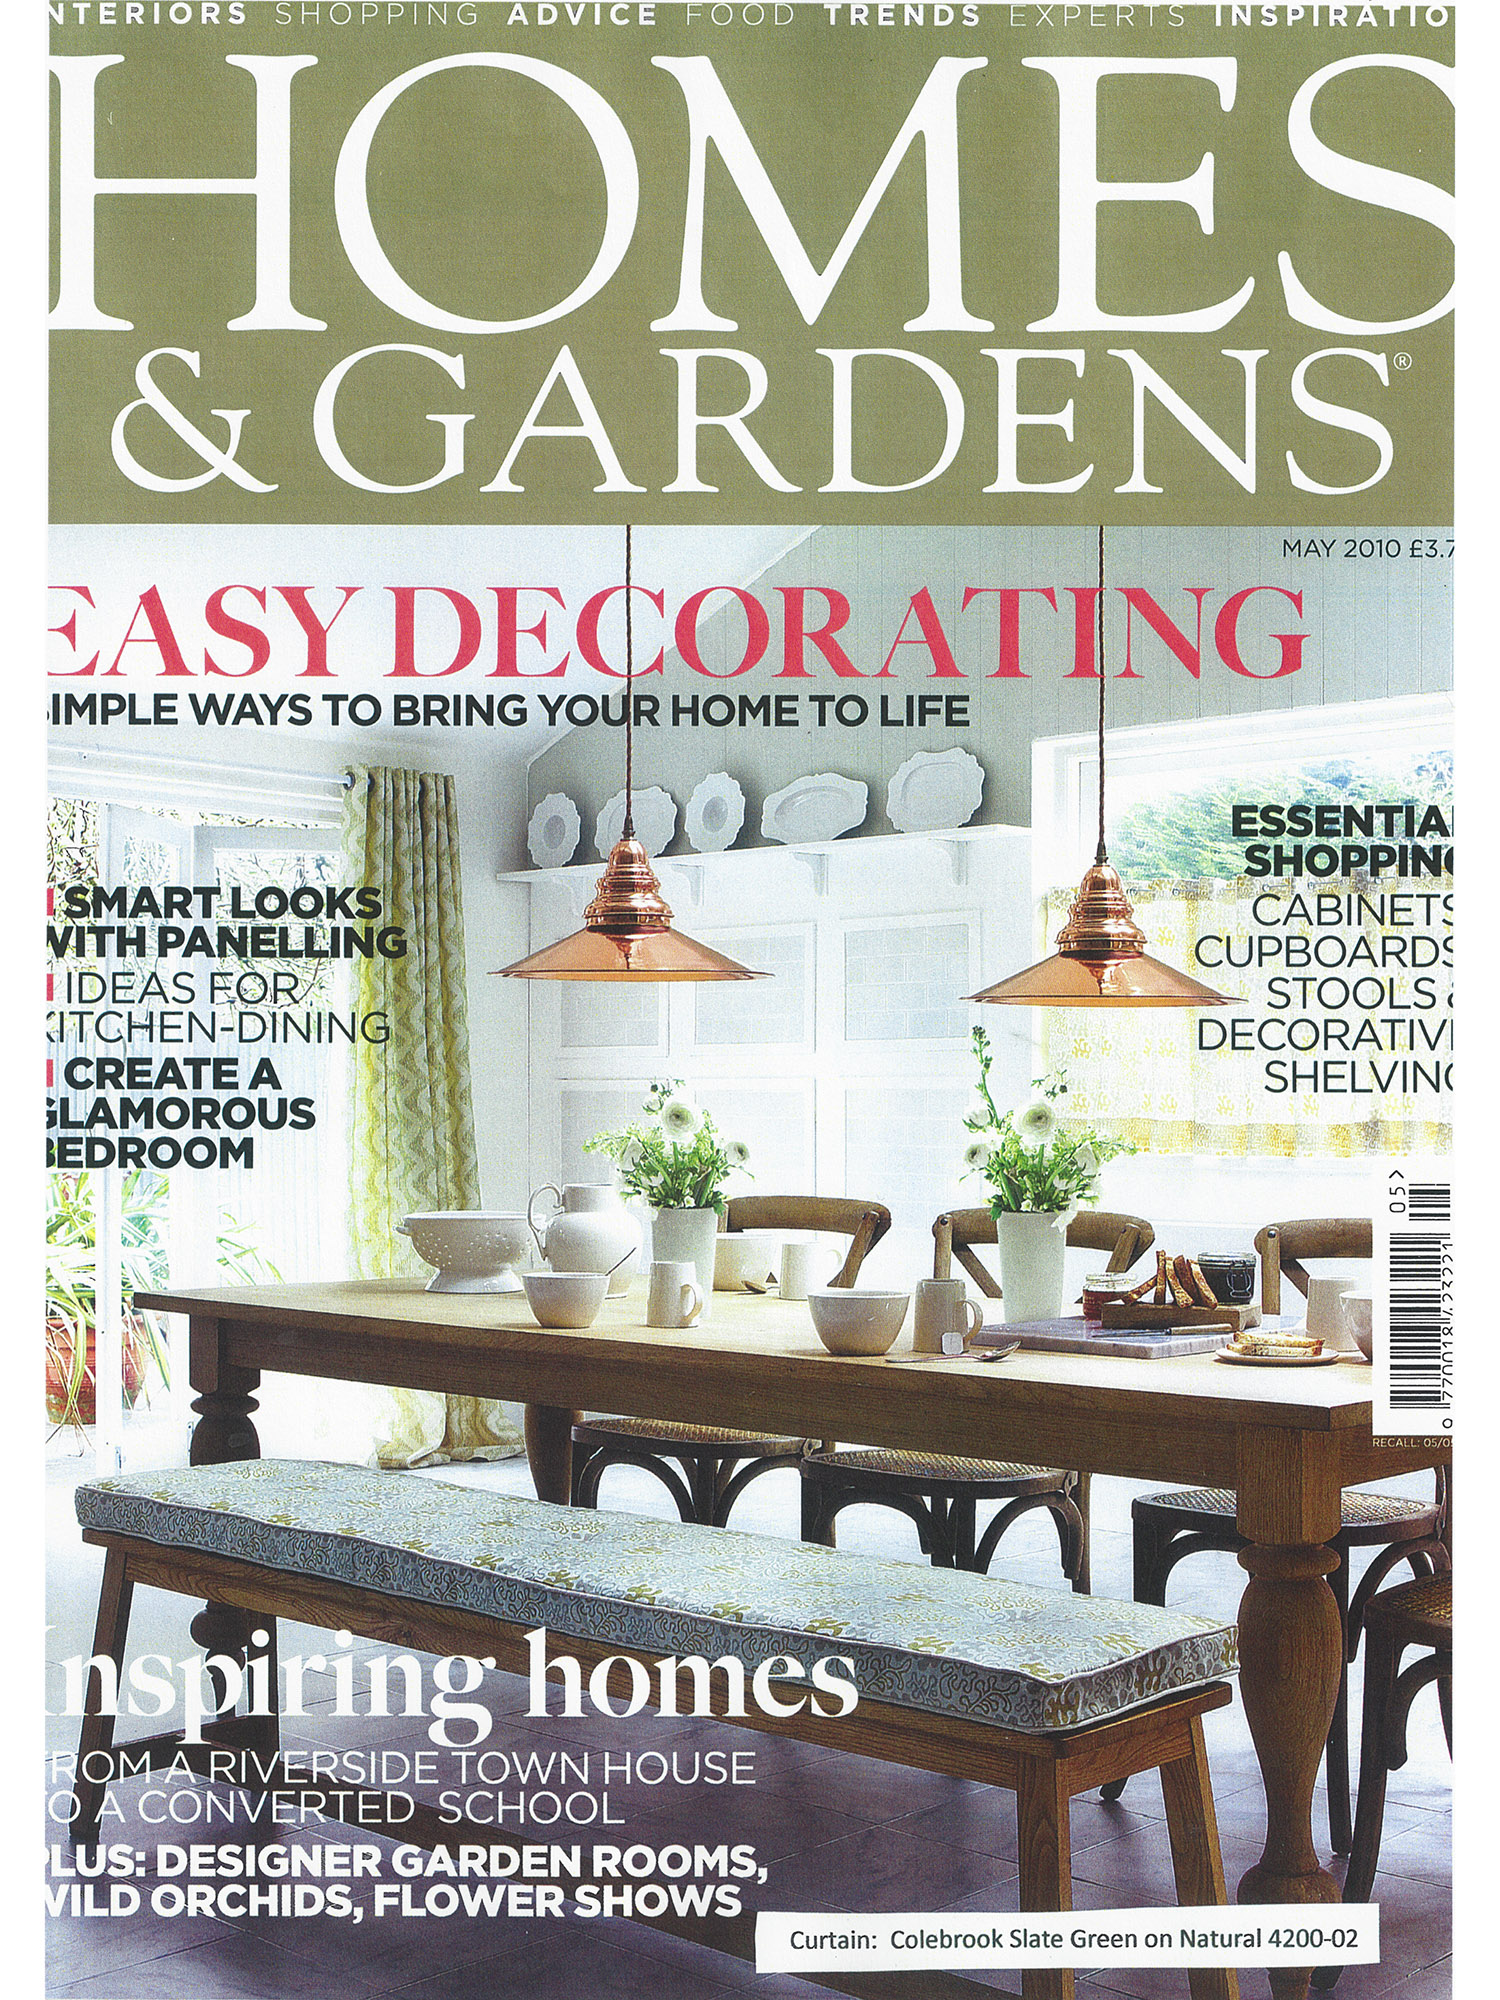 2010 May-Homes & Gardens.jpeg